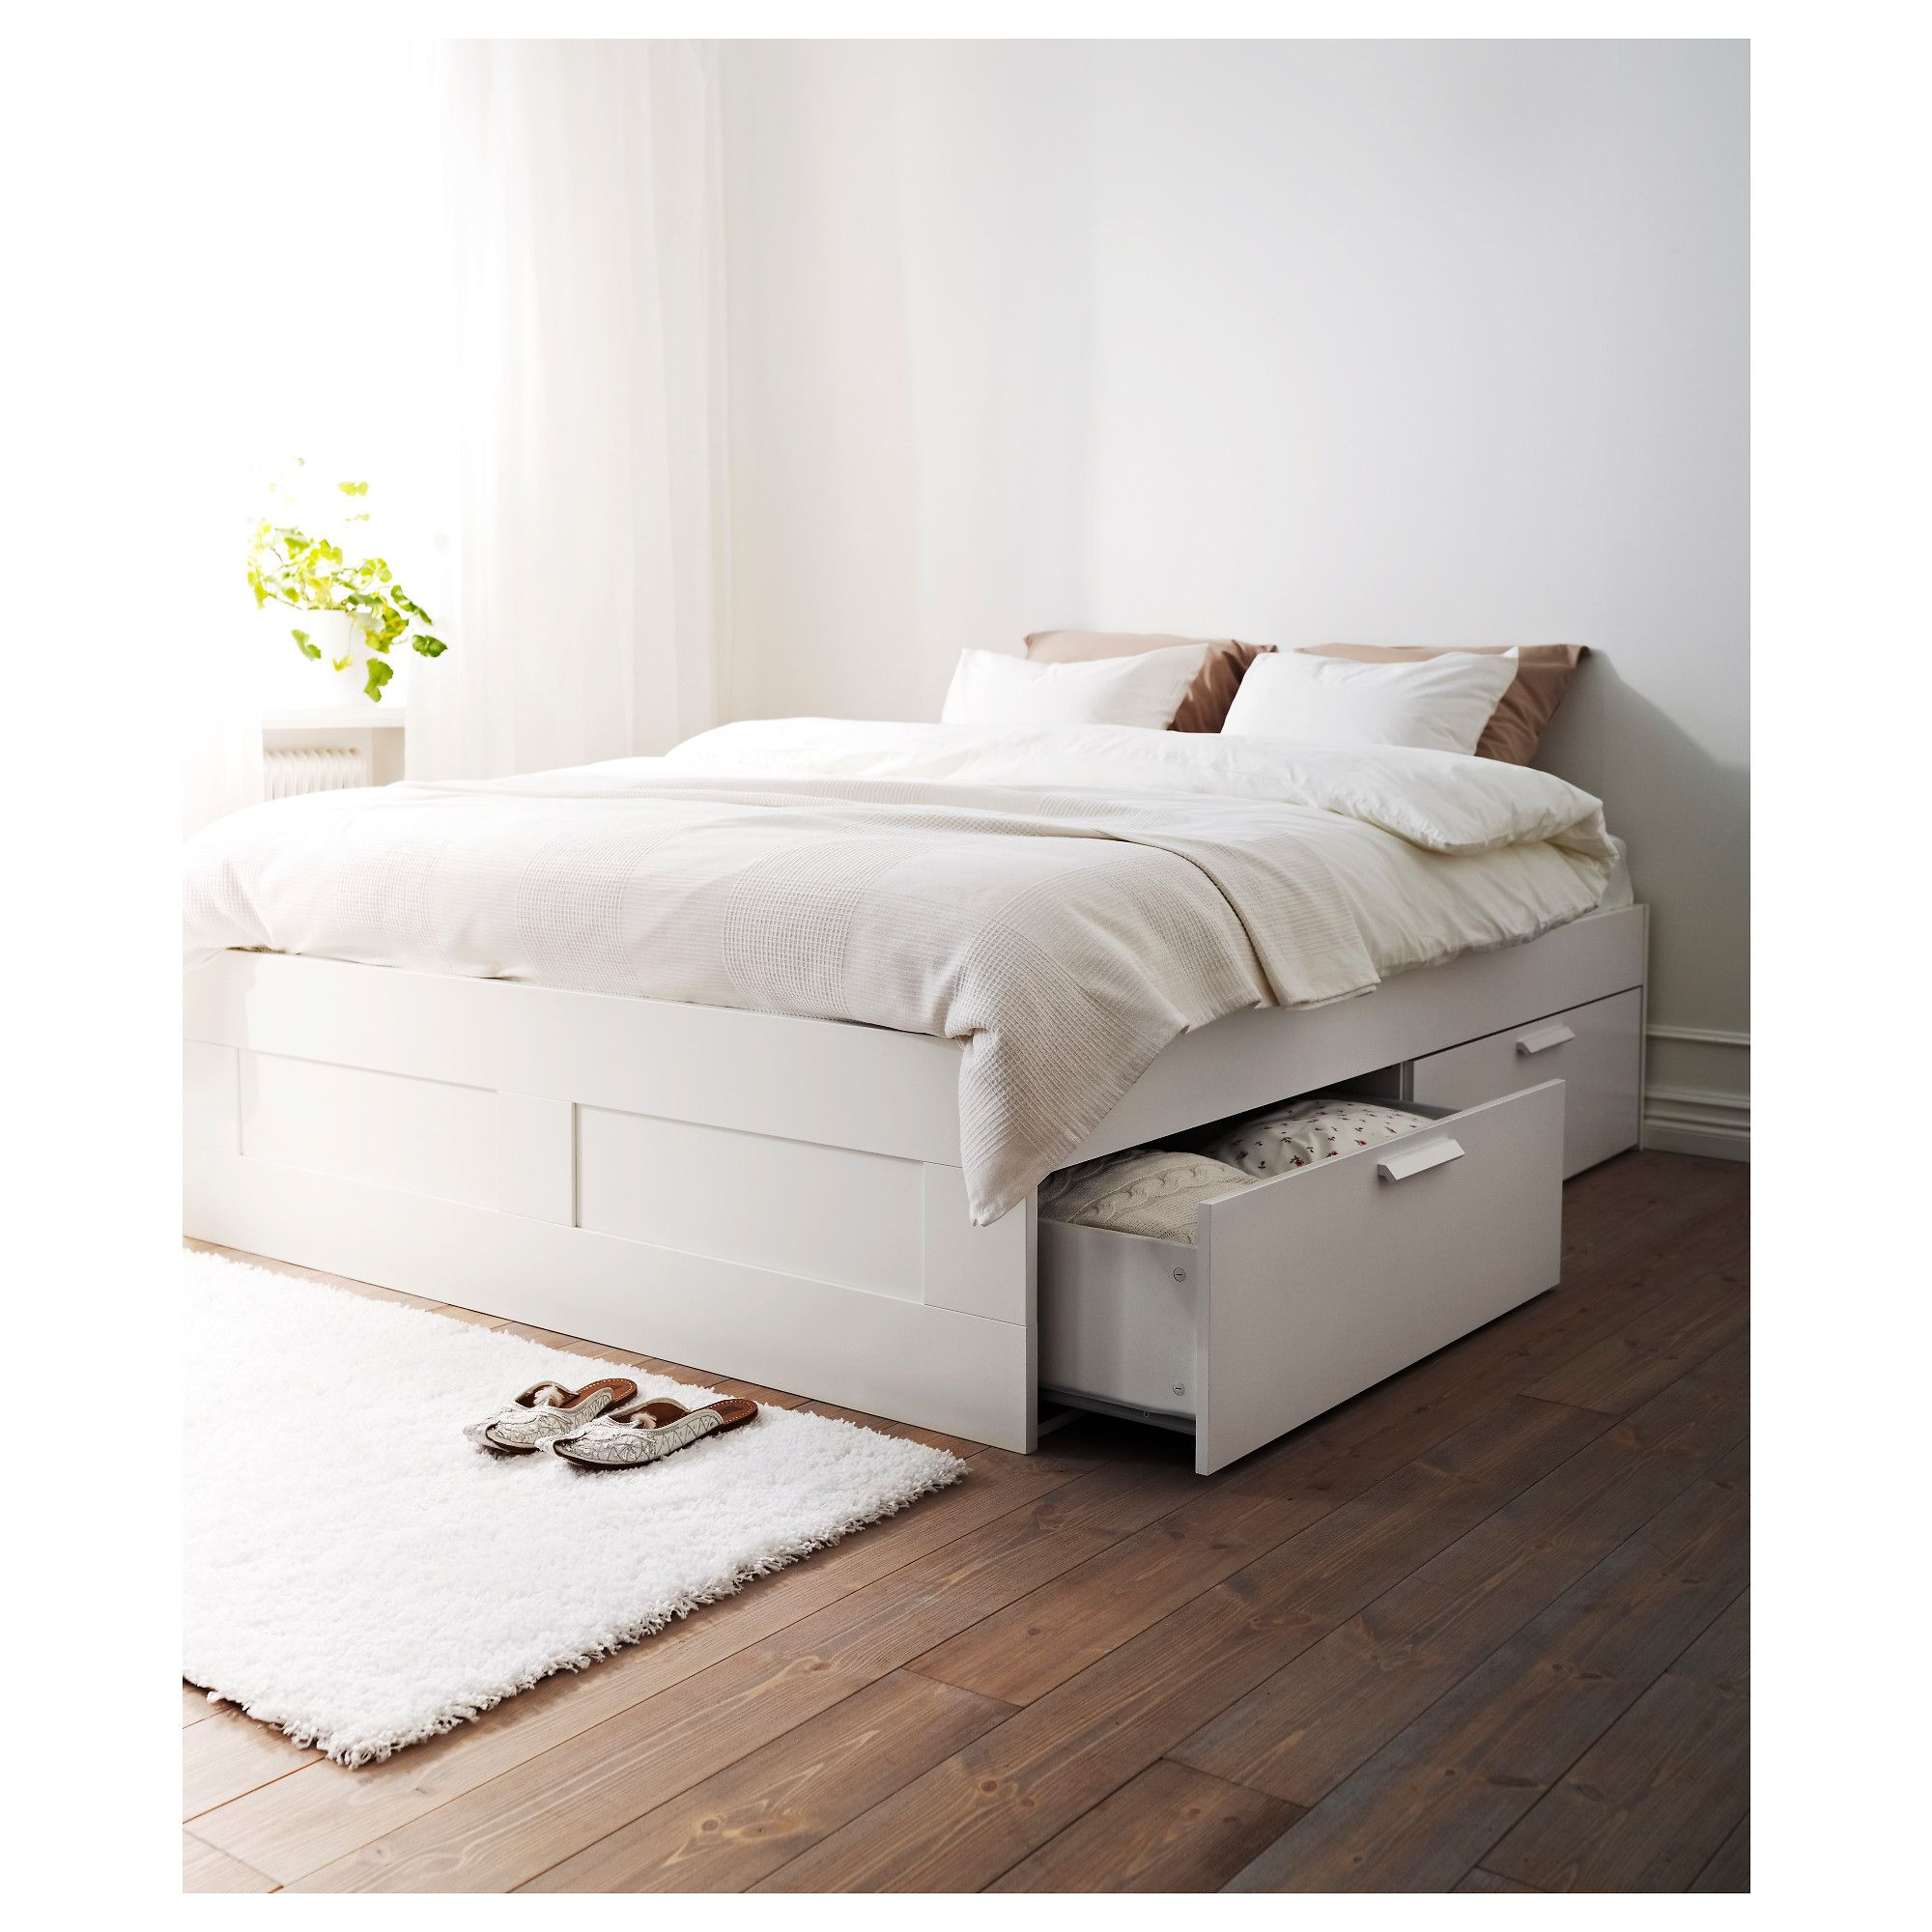 IKEA BRIMNES White, Luröy Bed frame with storage in 2019